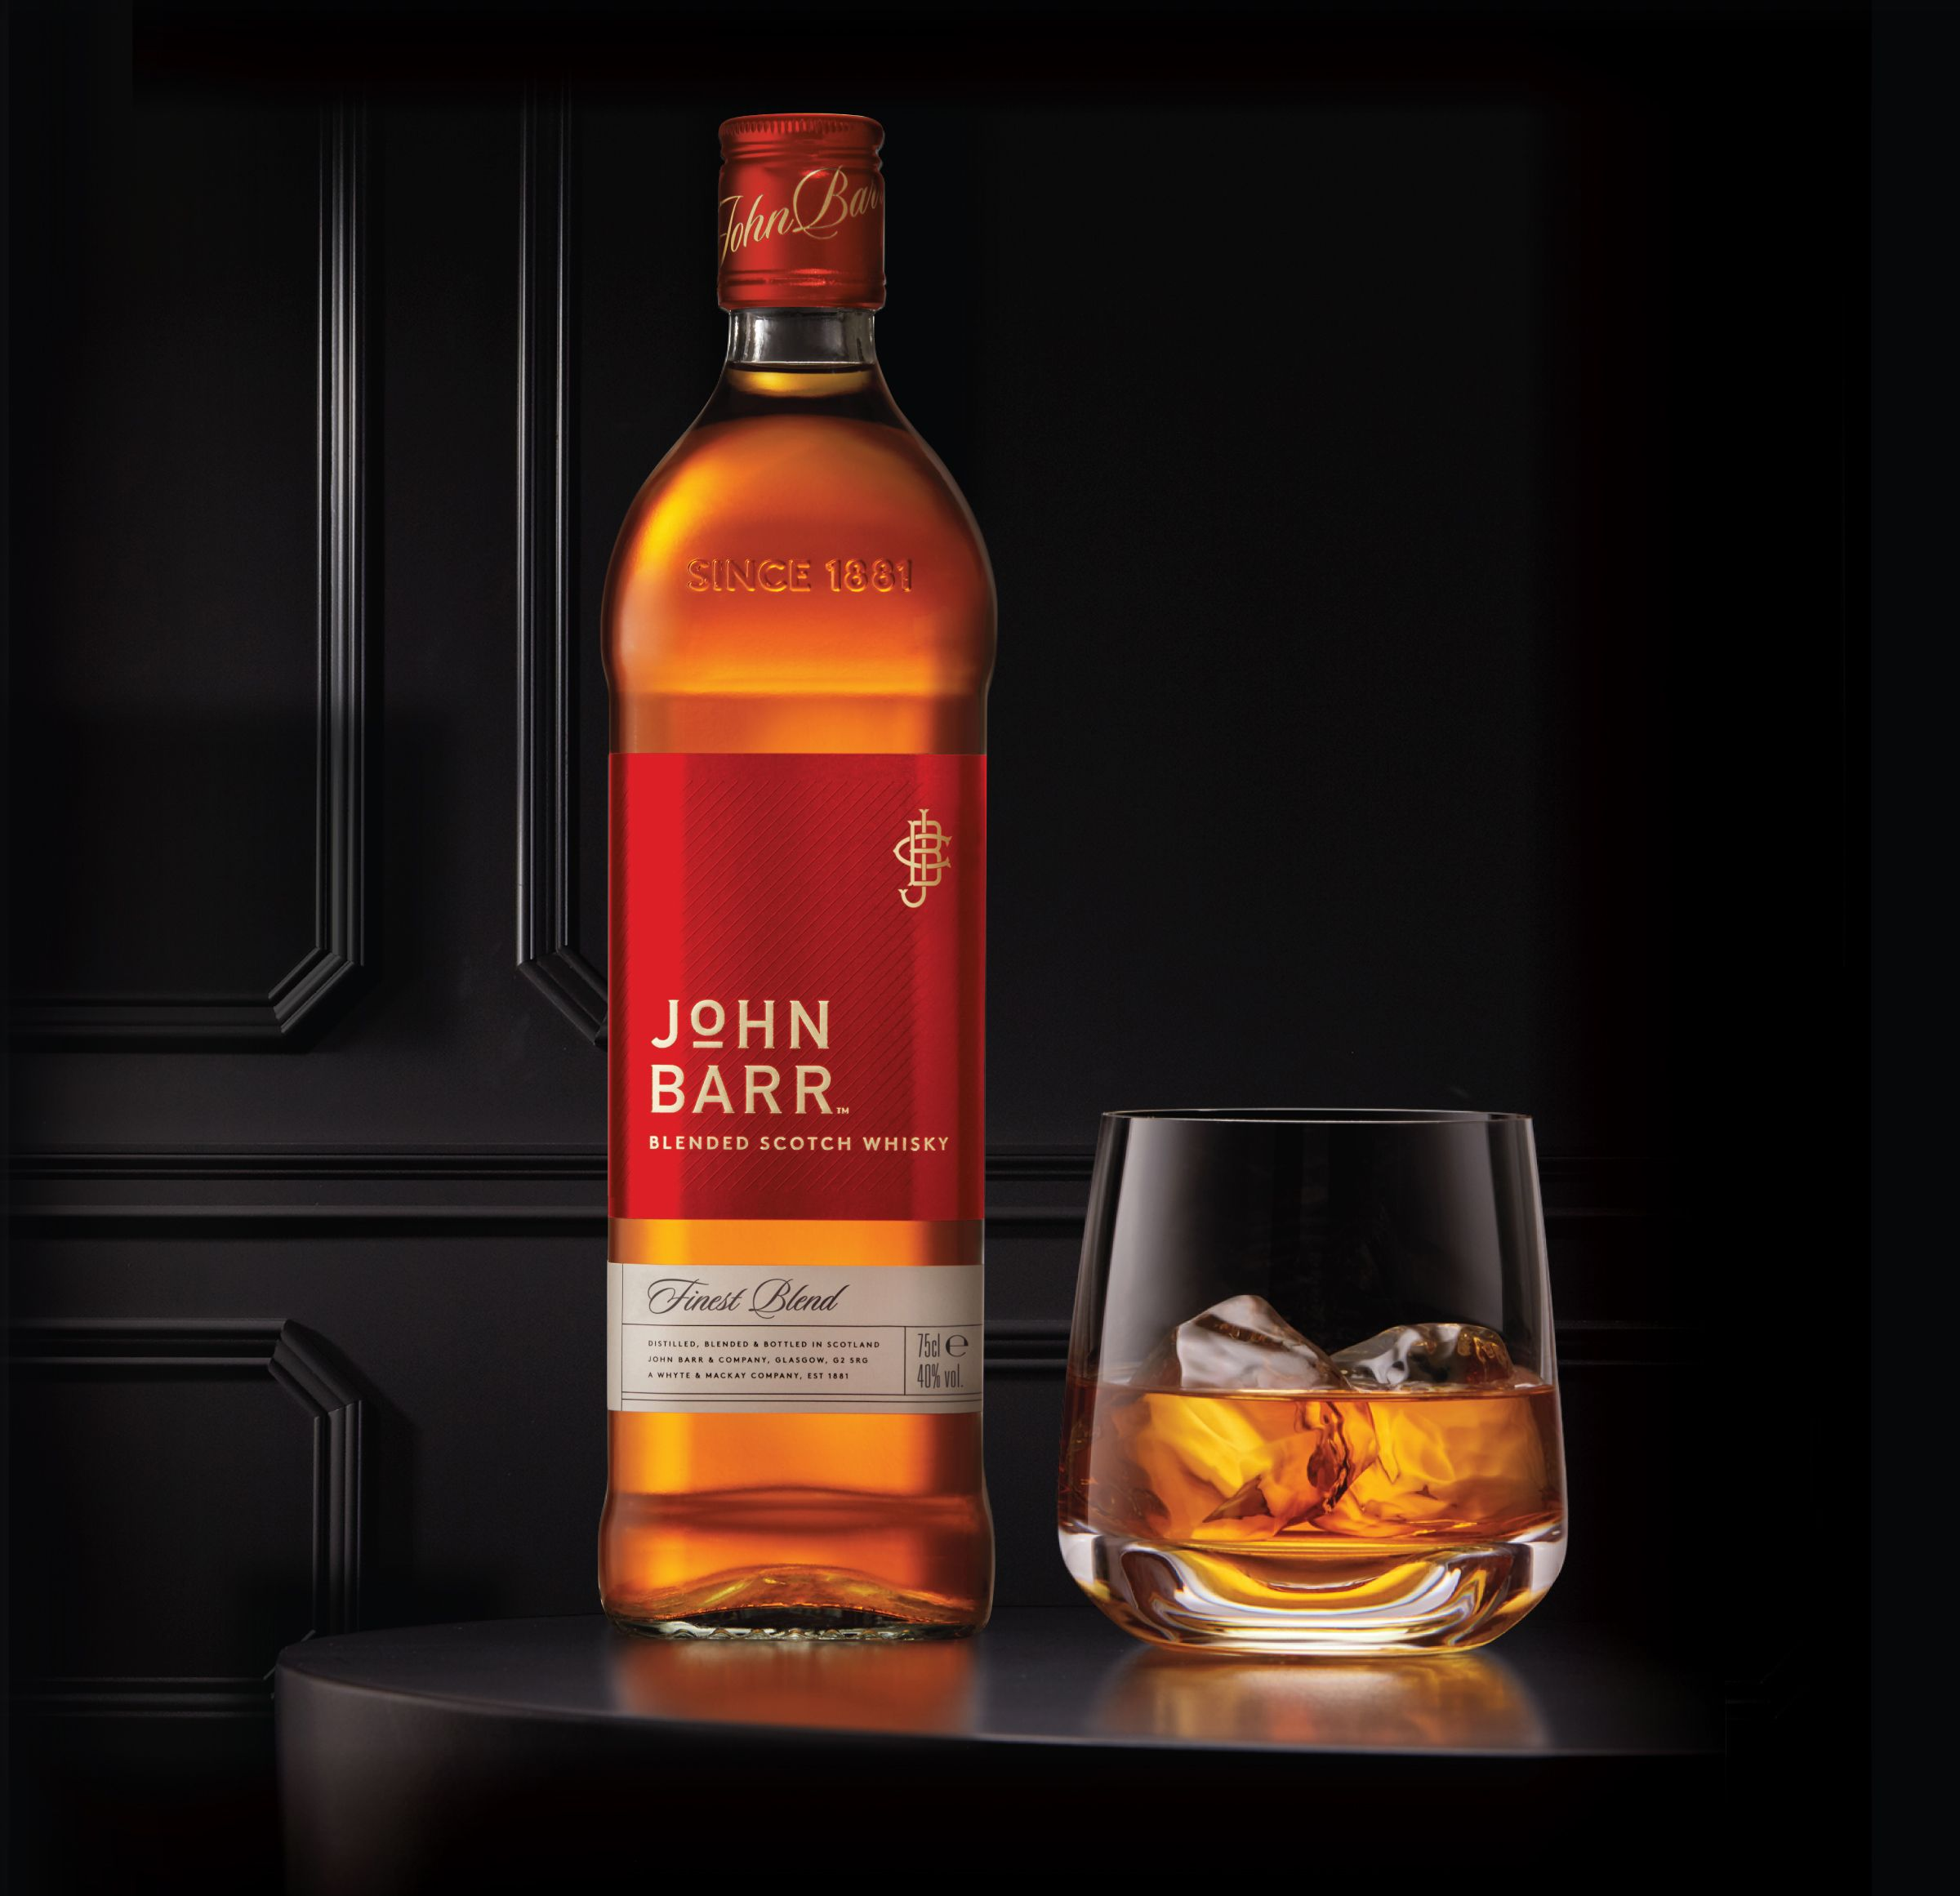 John Barr Whisky The Dieline Branding Packaging Design Whisky Bottle Whisky Packaging Whisky